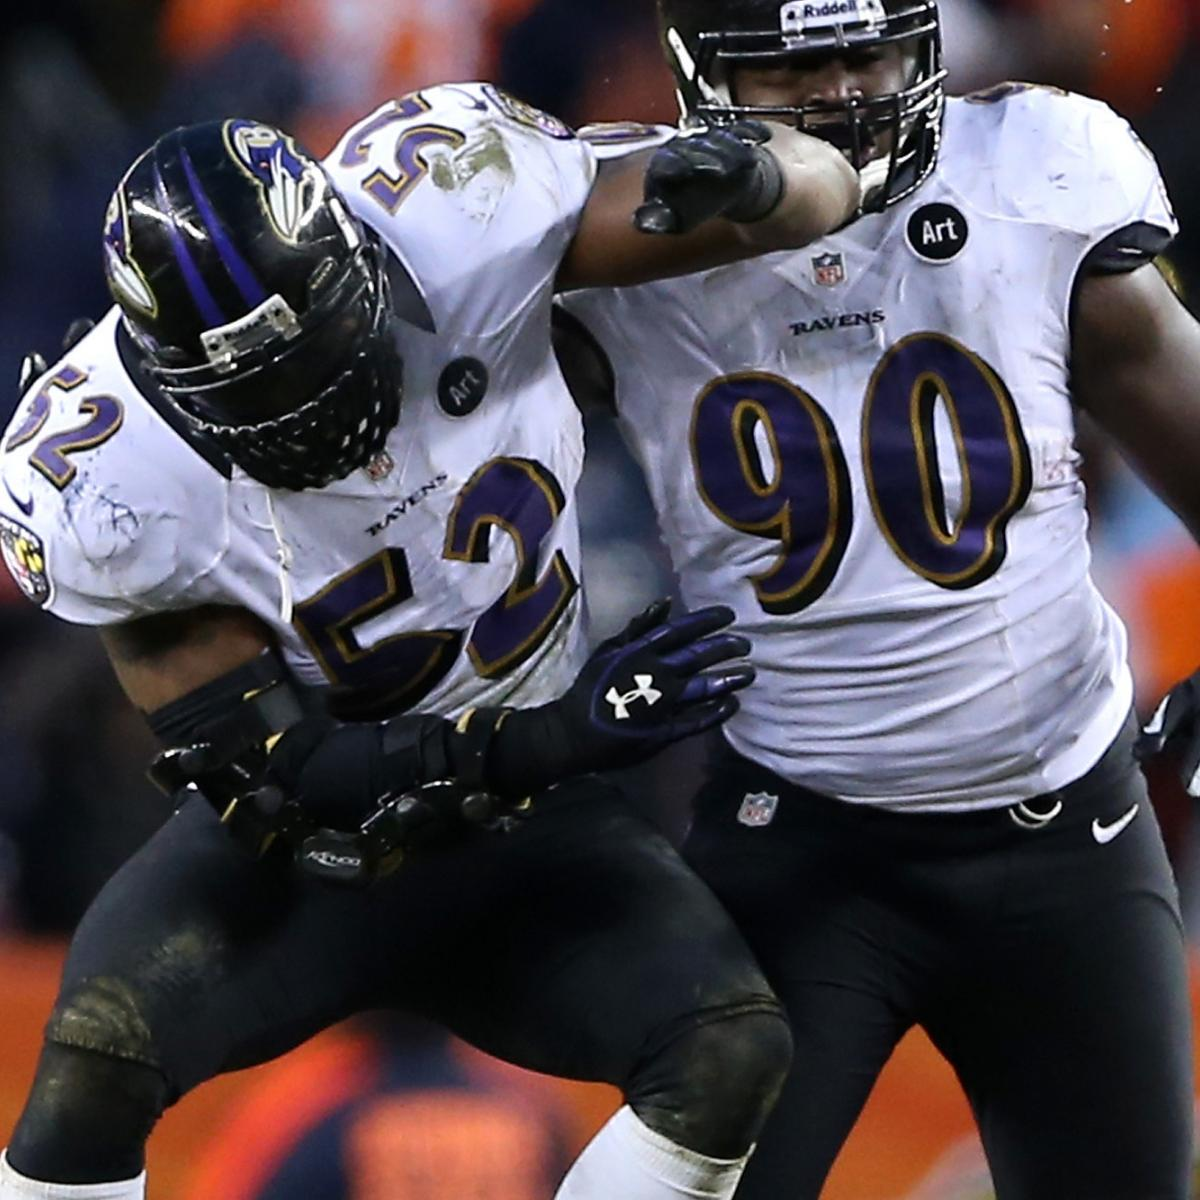 Baltimore Ravens Vs. Denver Broncos: Live Score